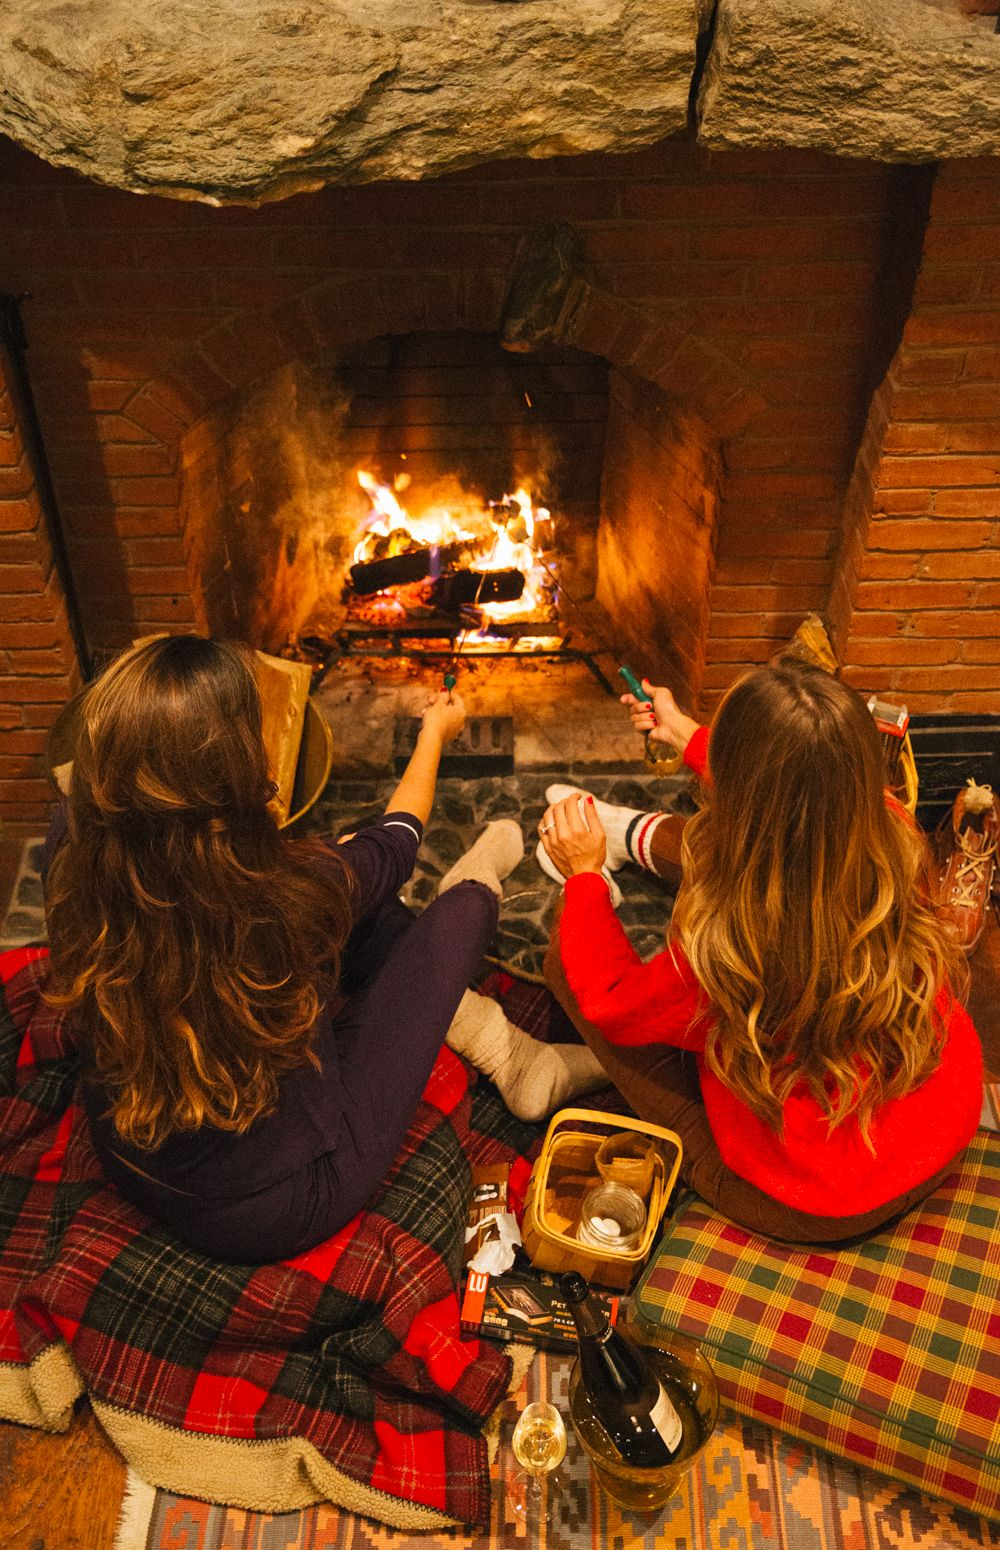 The Londoner » S'More Adventures in Vermont